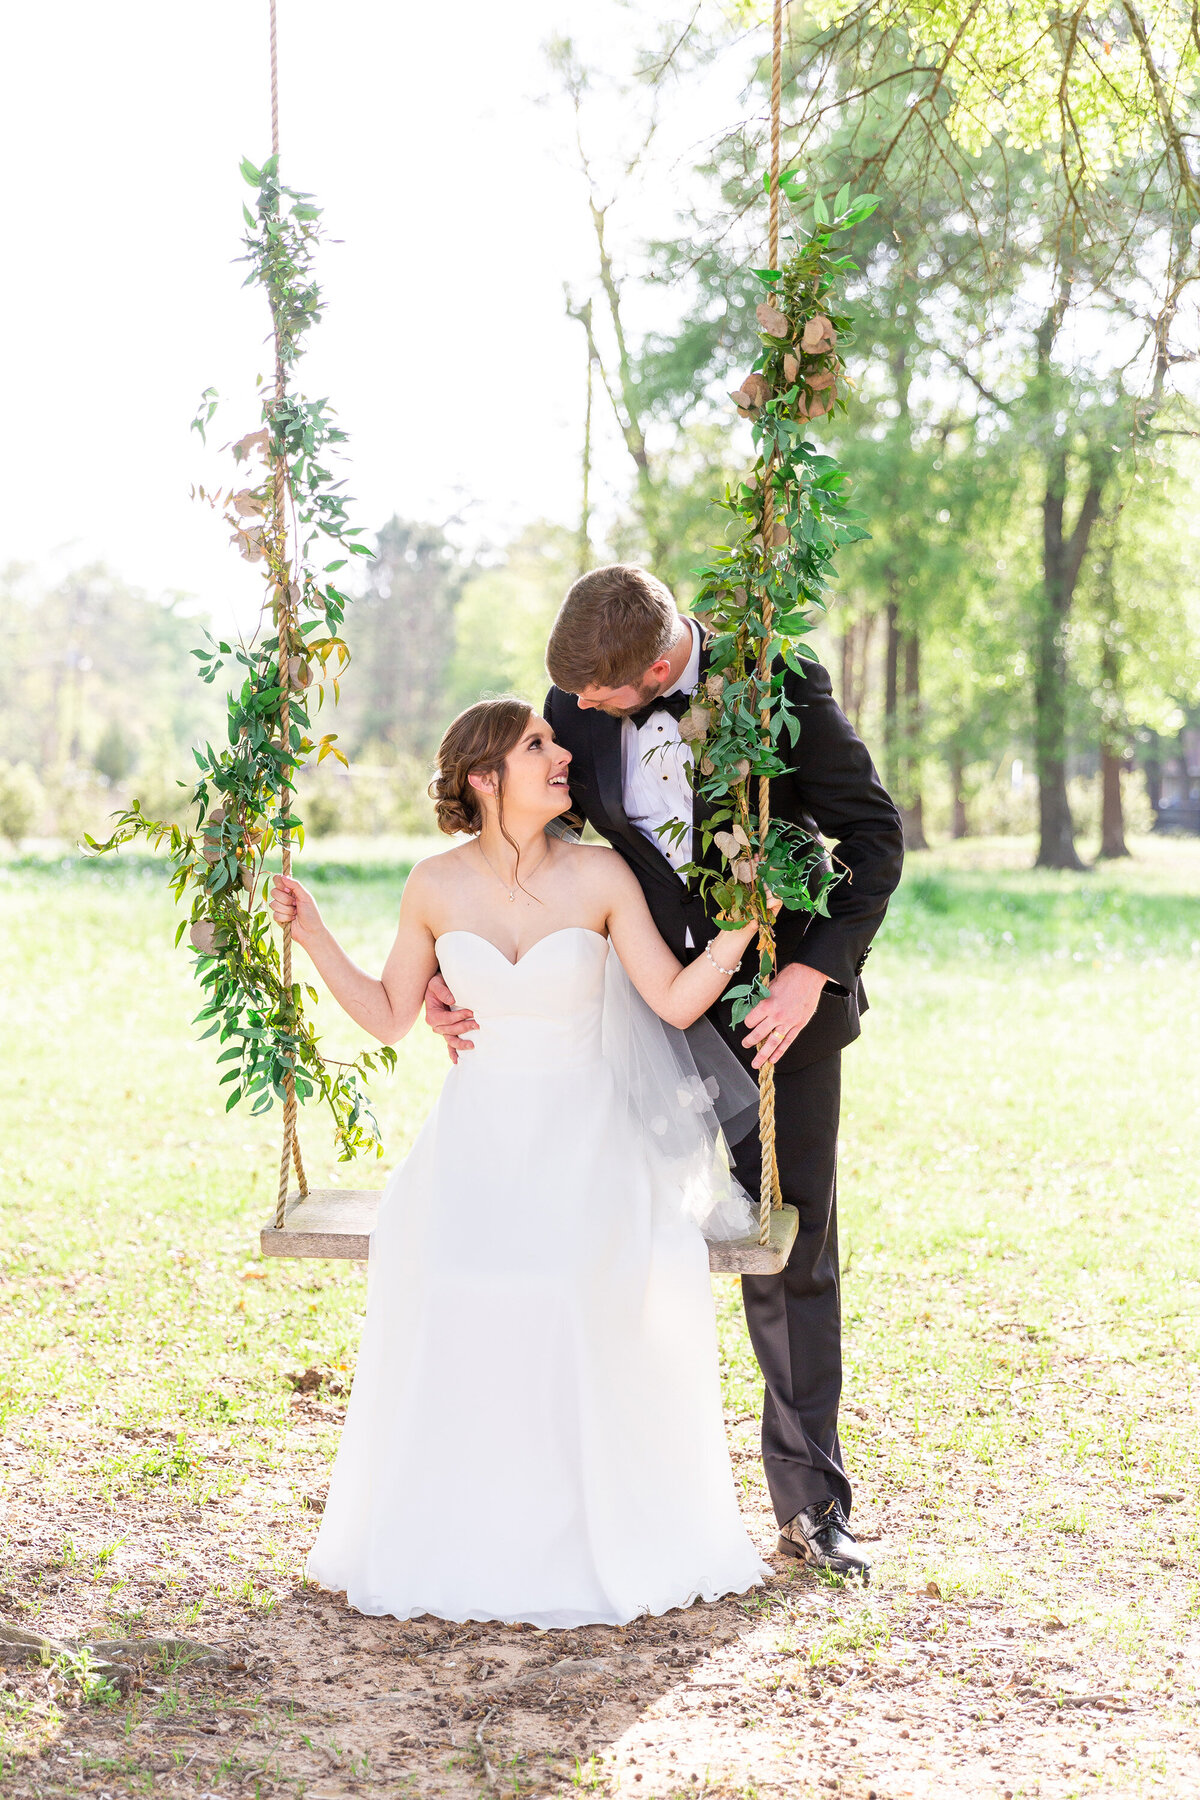 Sweet Moment Between Bride and Groom on a Swing